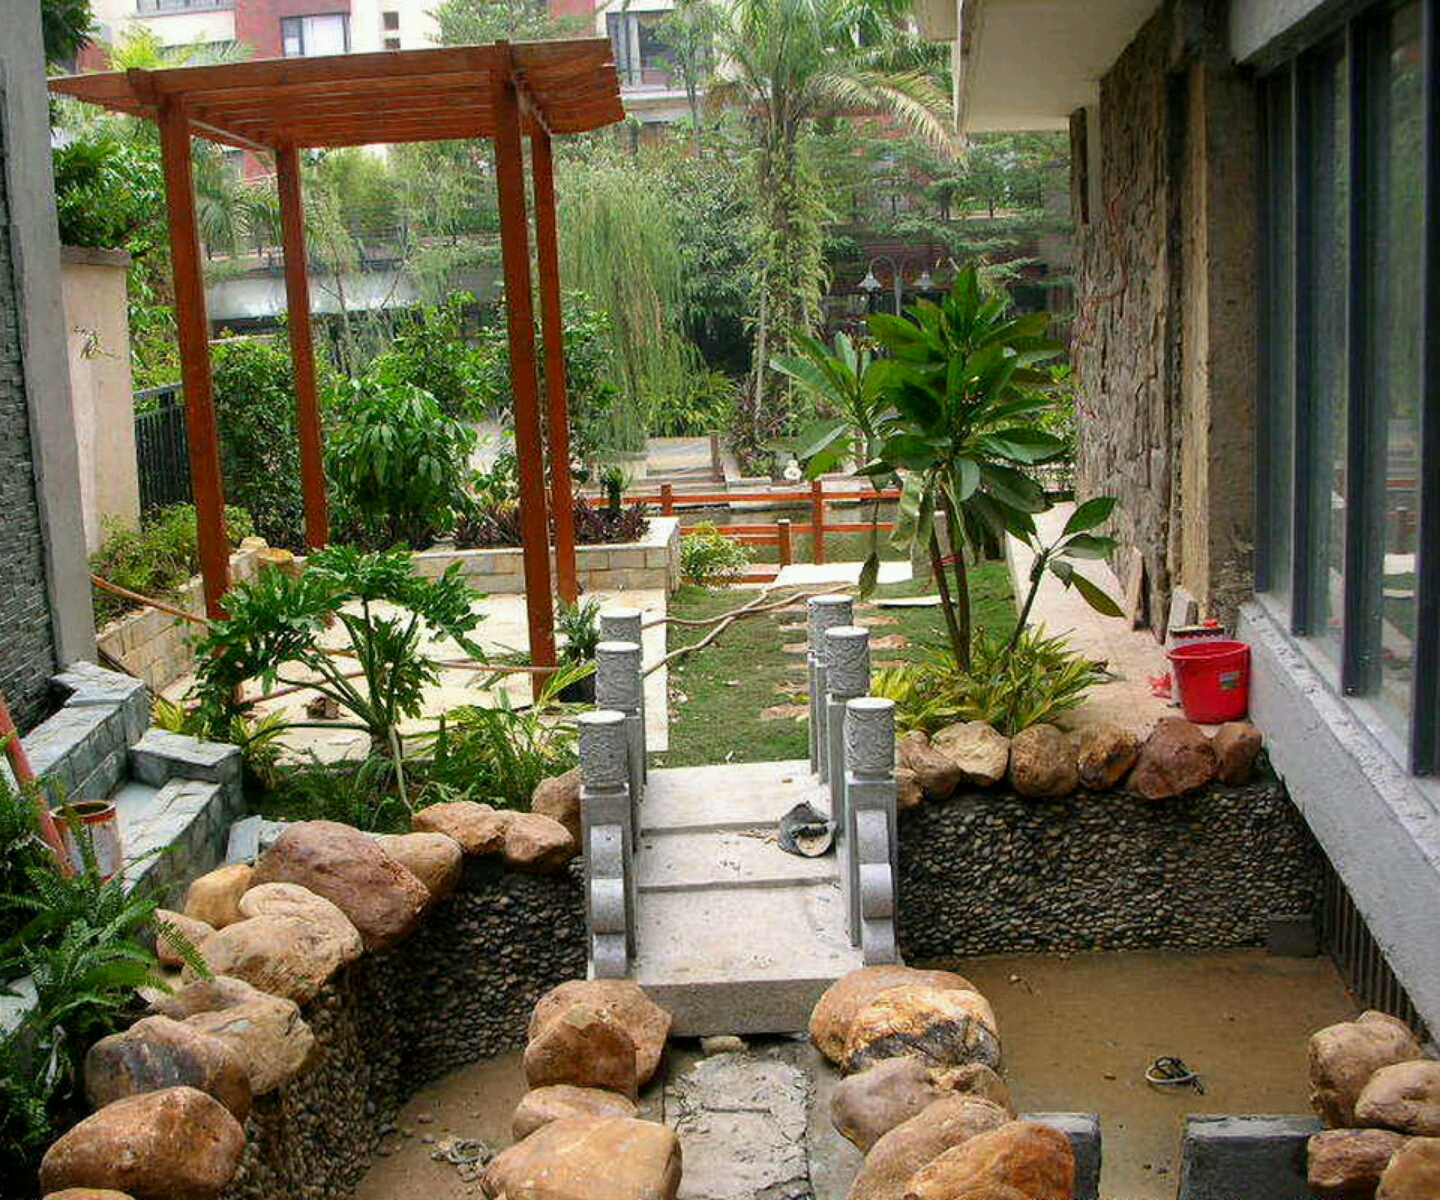 Home Decor 2012: Beautiful Home Gardens Designs Ideas